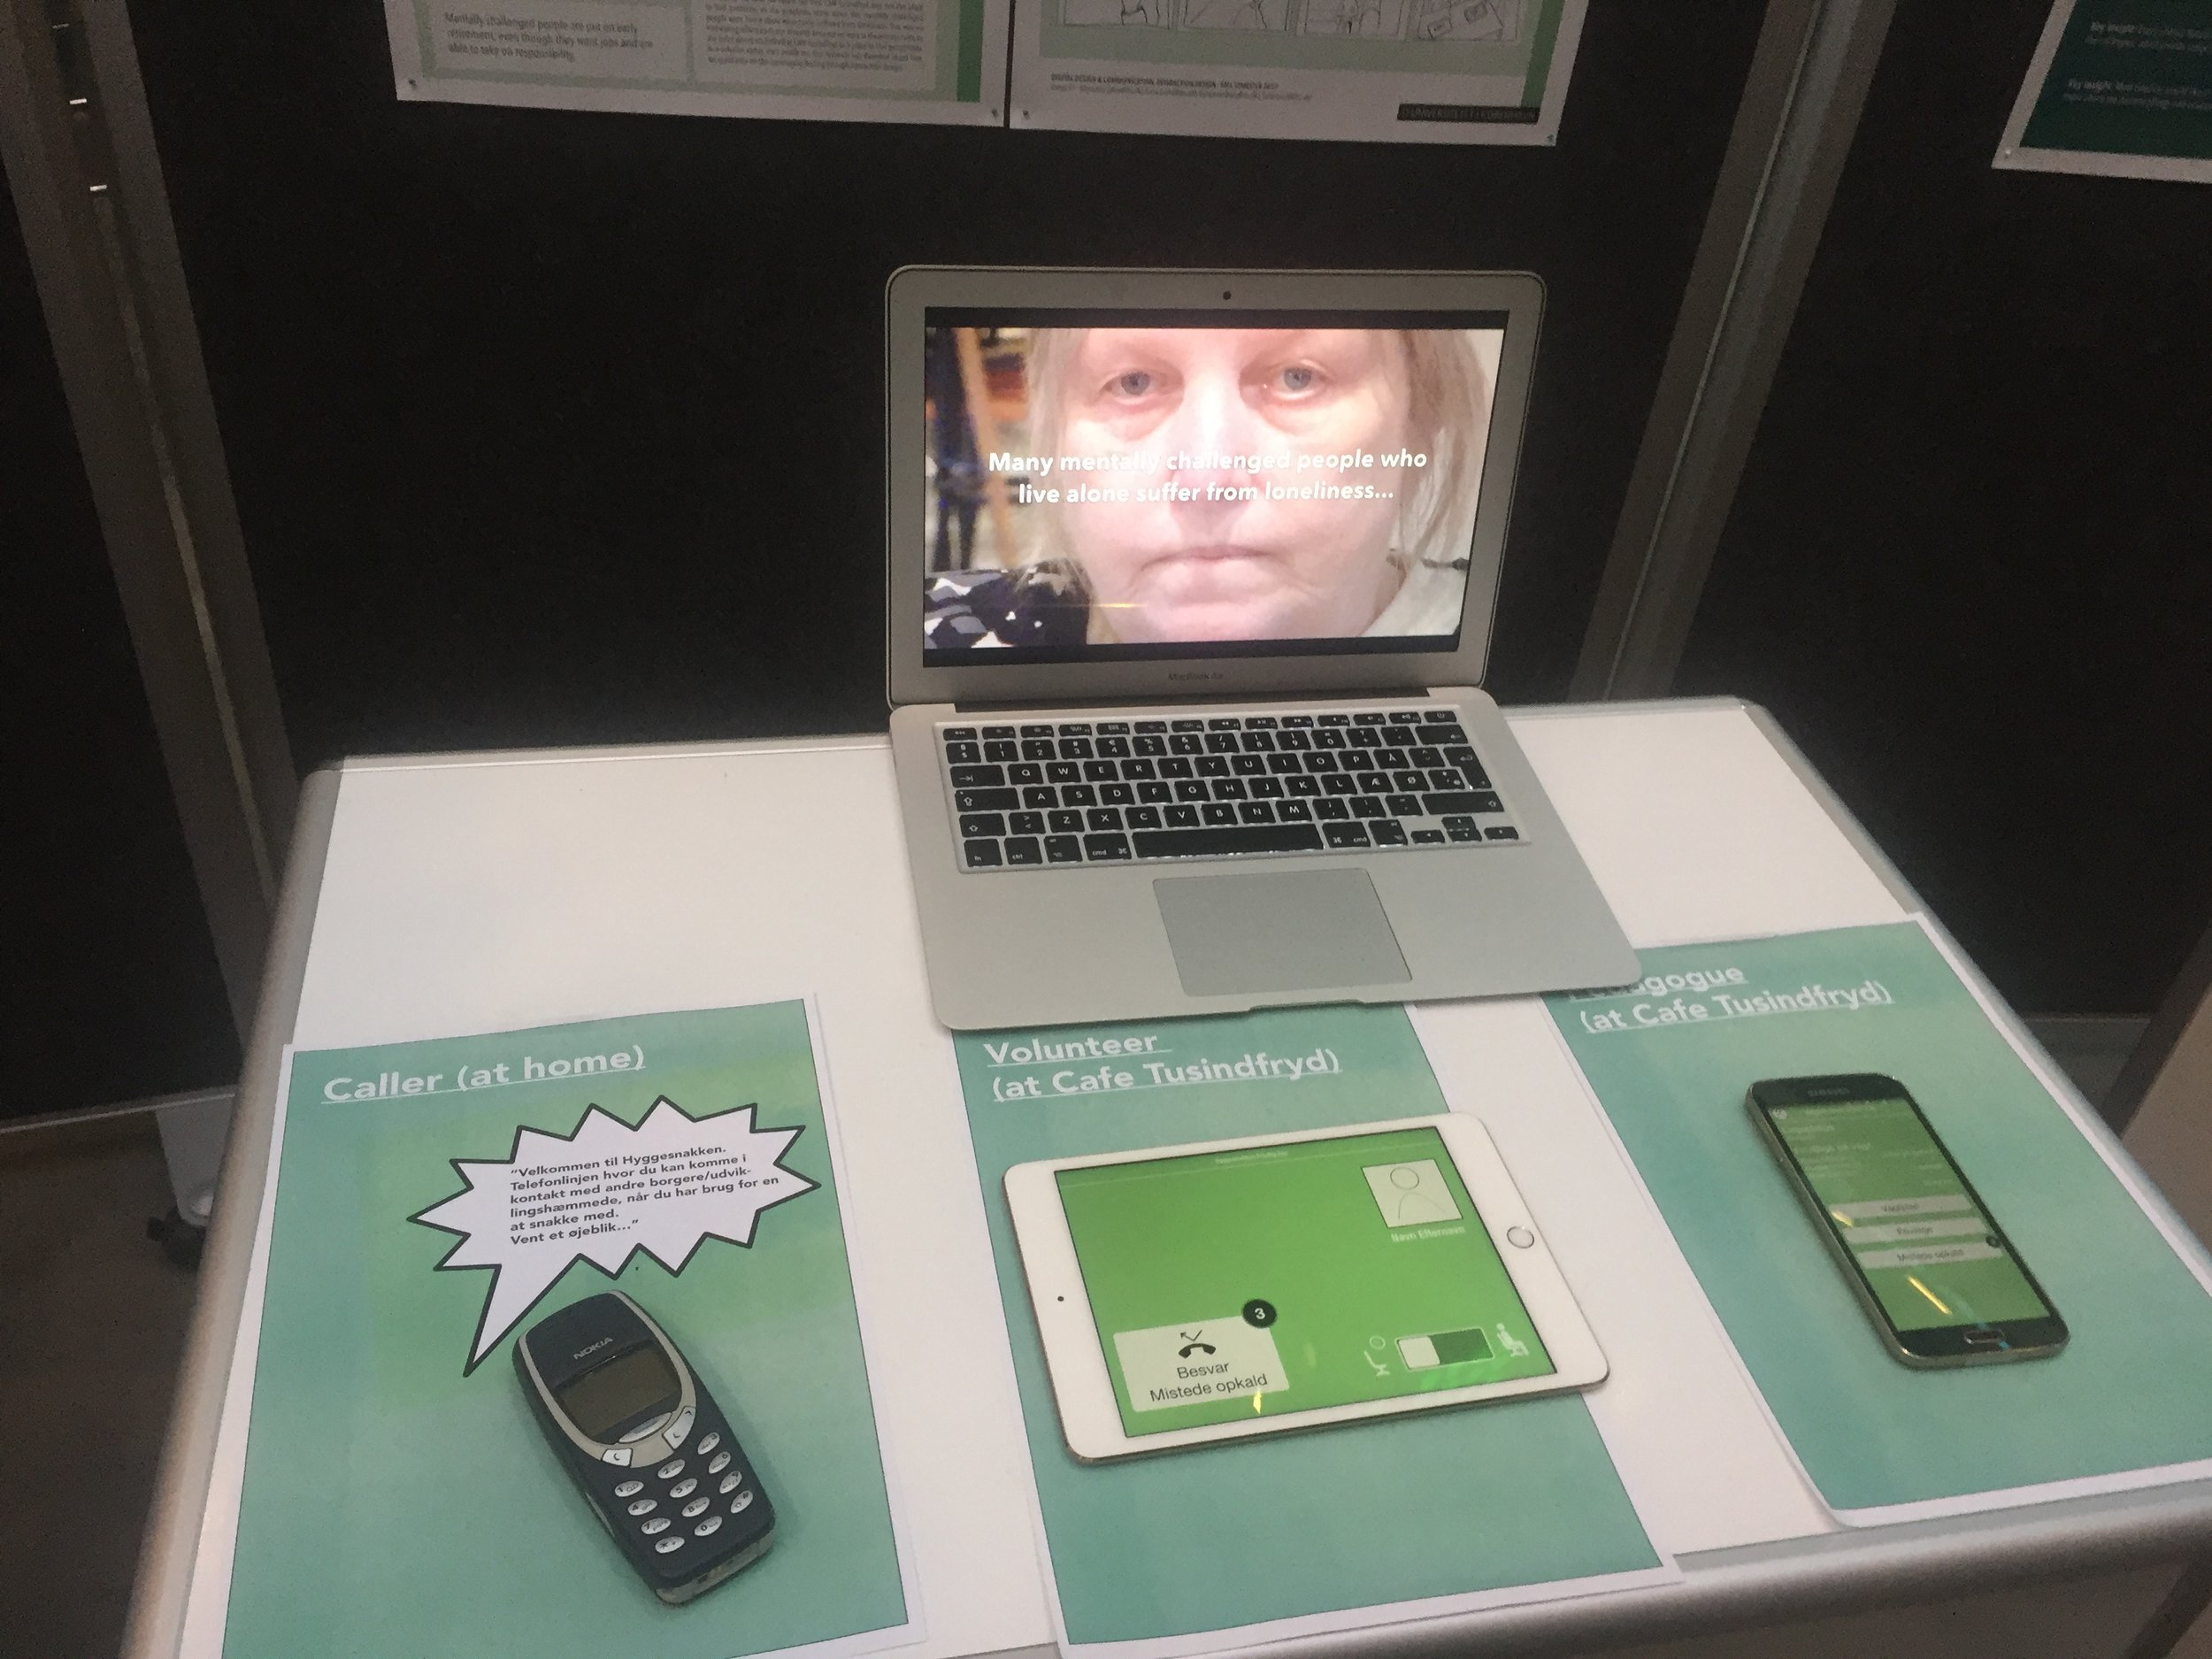 The collective set of prototypes. A traditional telephone was chosen as the primary touchpoint, as this is the technology most citizens are comfortable using on their own.